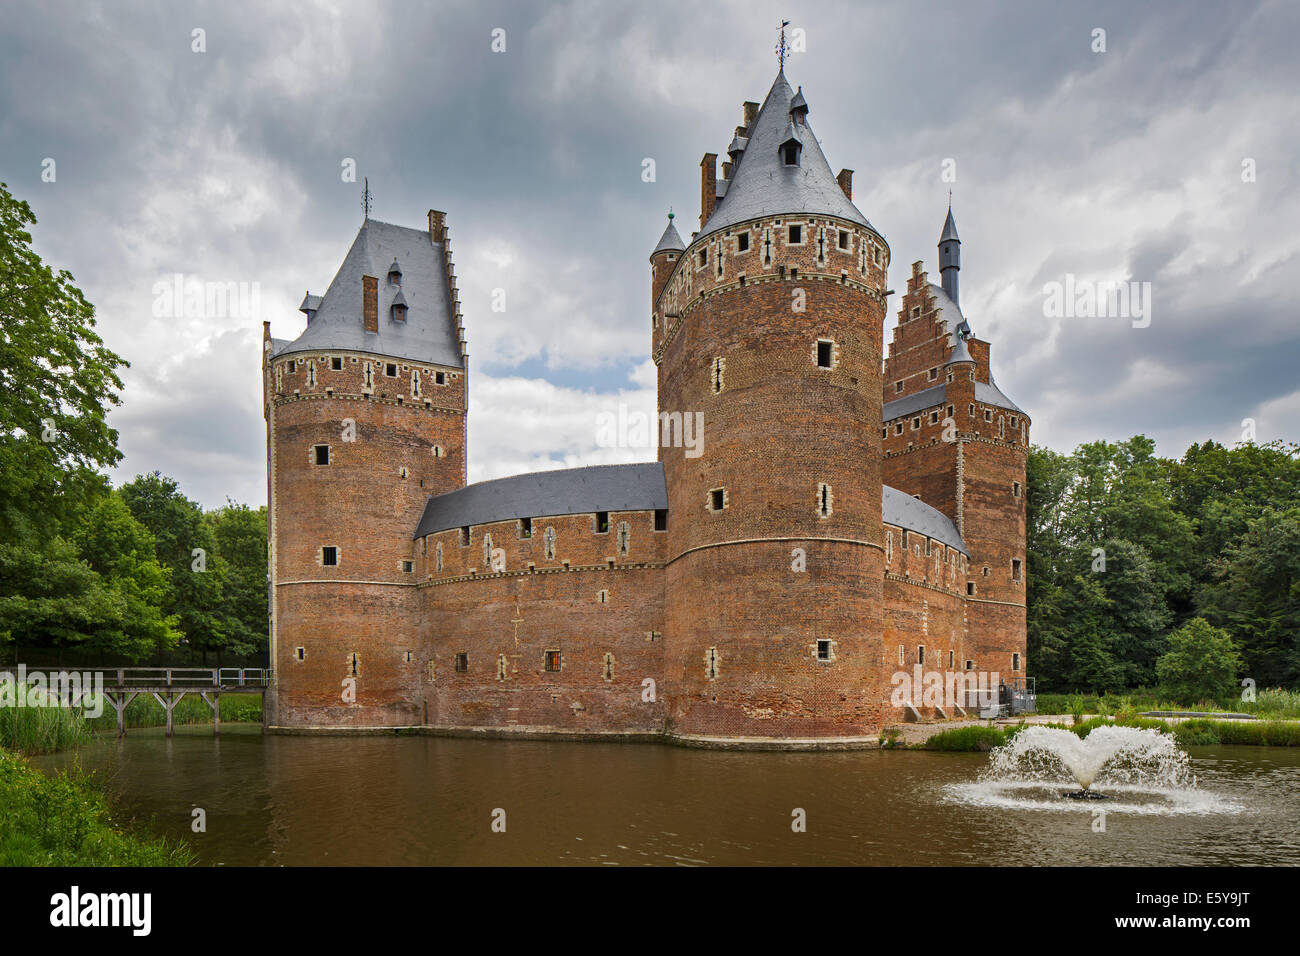 The medieval Beersel Castle surrounded by a moat, Flanders, Belgium - Stock Image